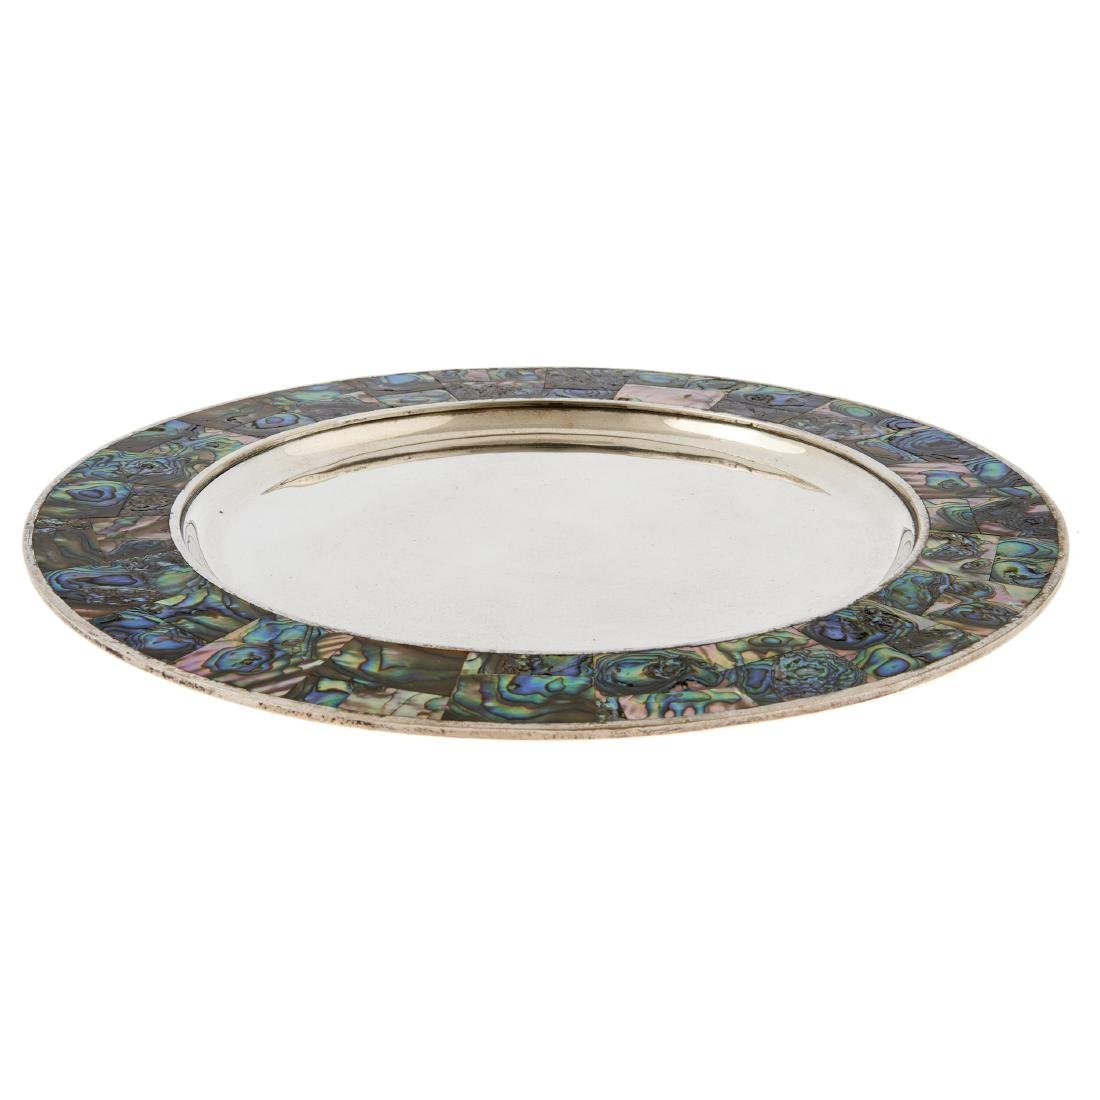 A Mexican silver plated tray with inlaid abalone shell